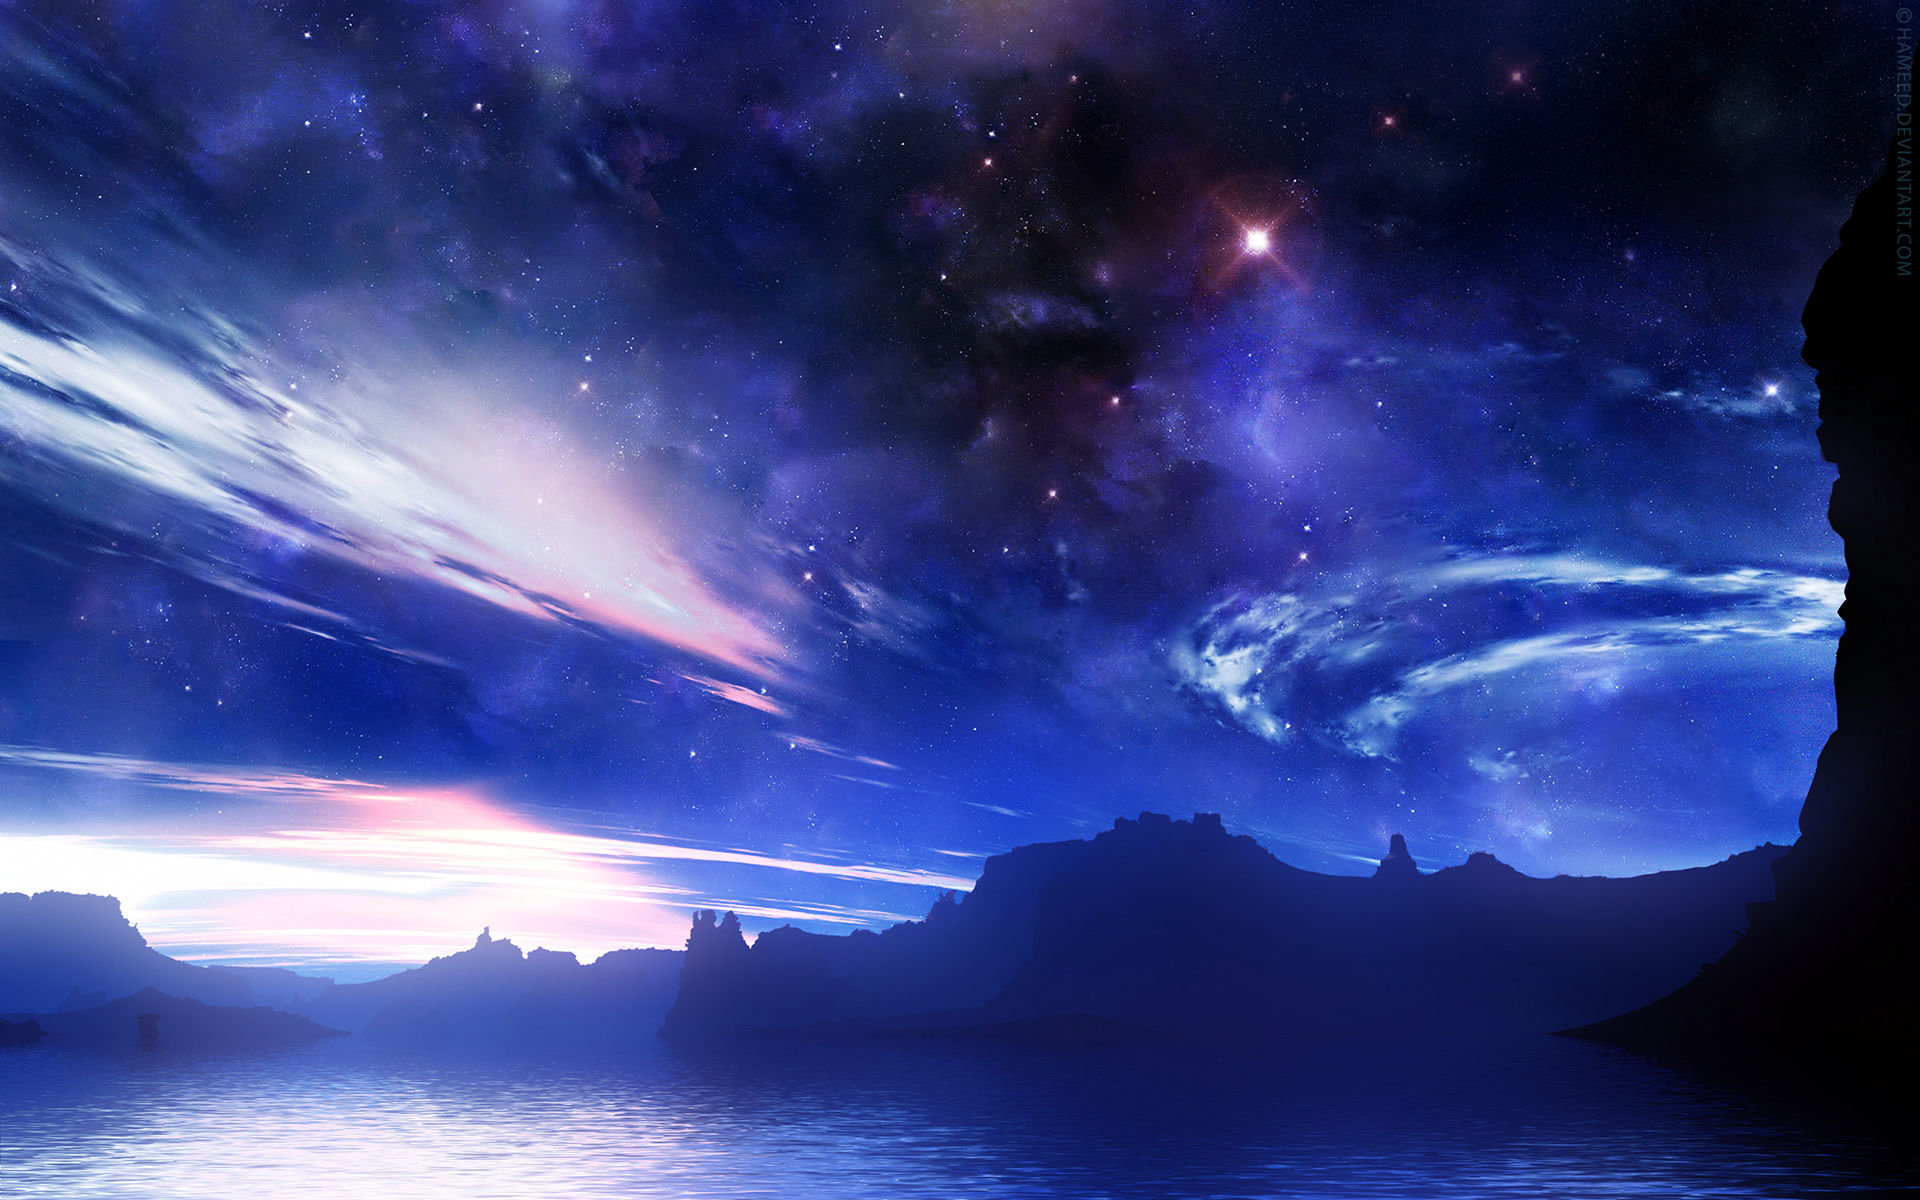 blue night sky background - photo #43